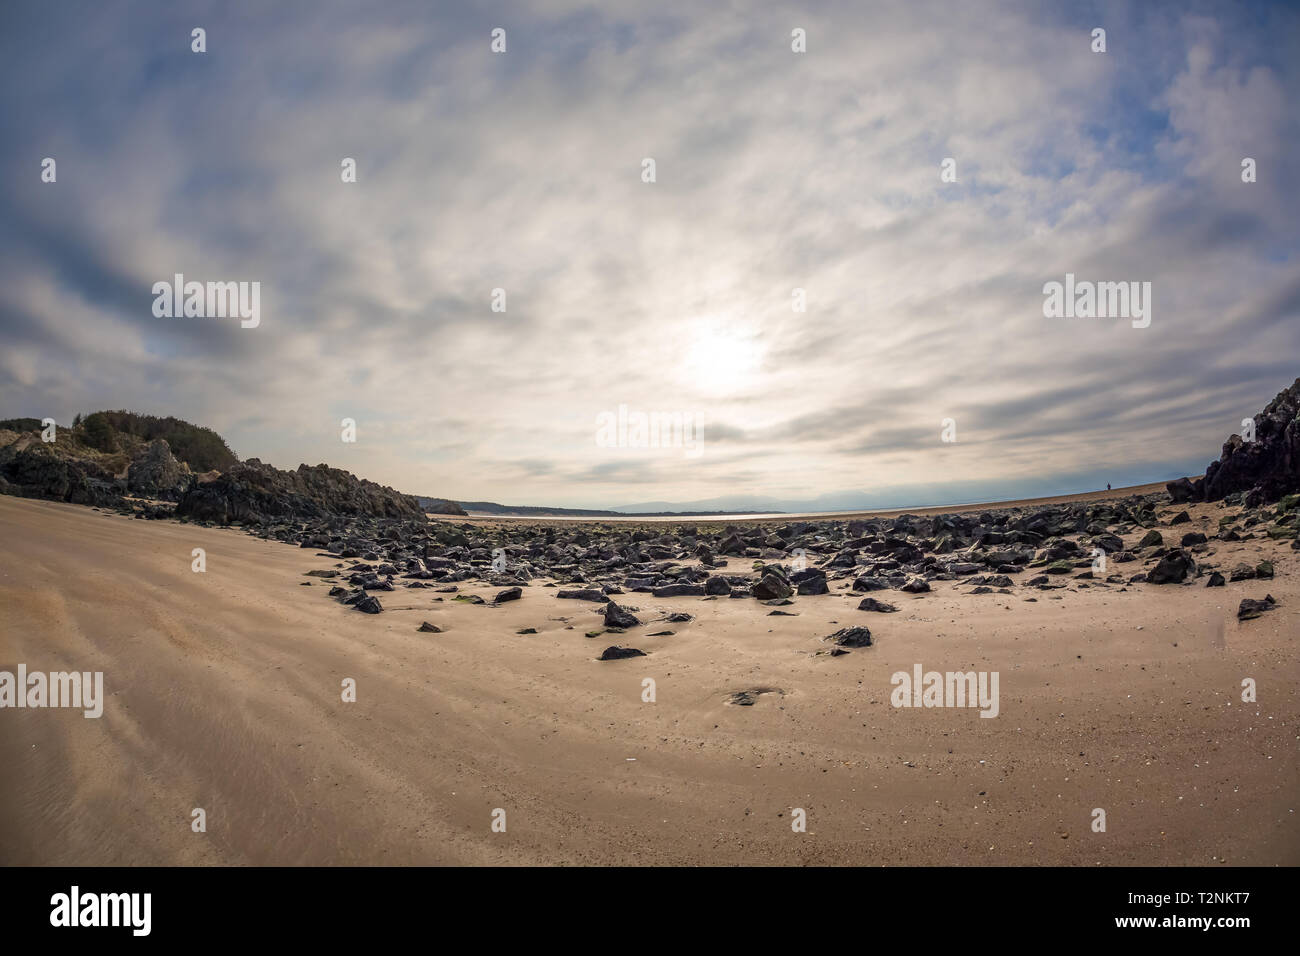 Beach landscape - Stock Image